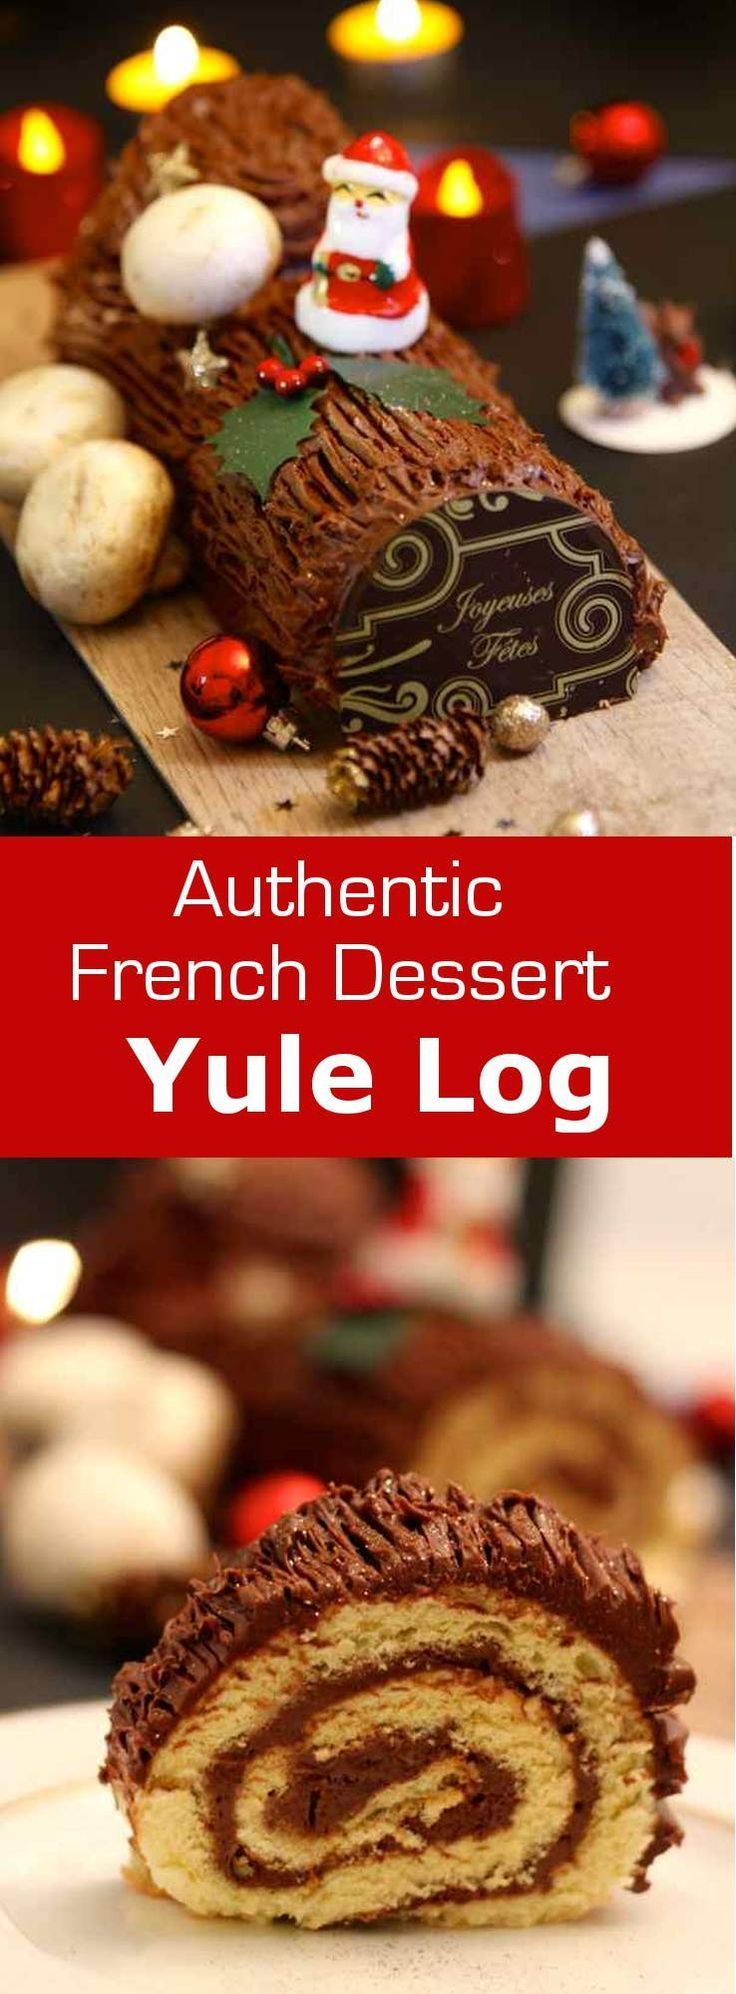 228 best french desserts images on pinterest petit fours conch chocolate yule log bche de nol au chocolat cake arttraditional christmas forumfinder Images